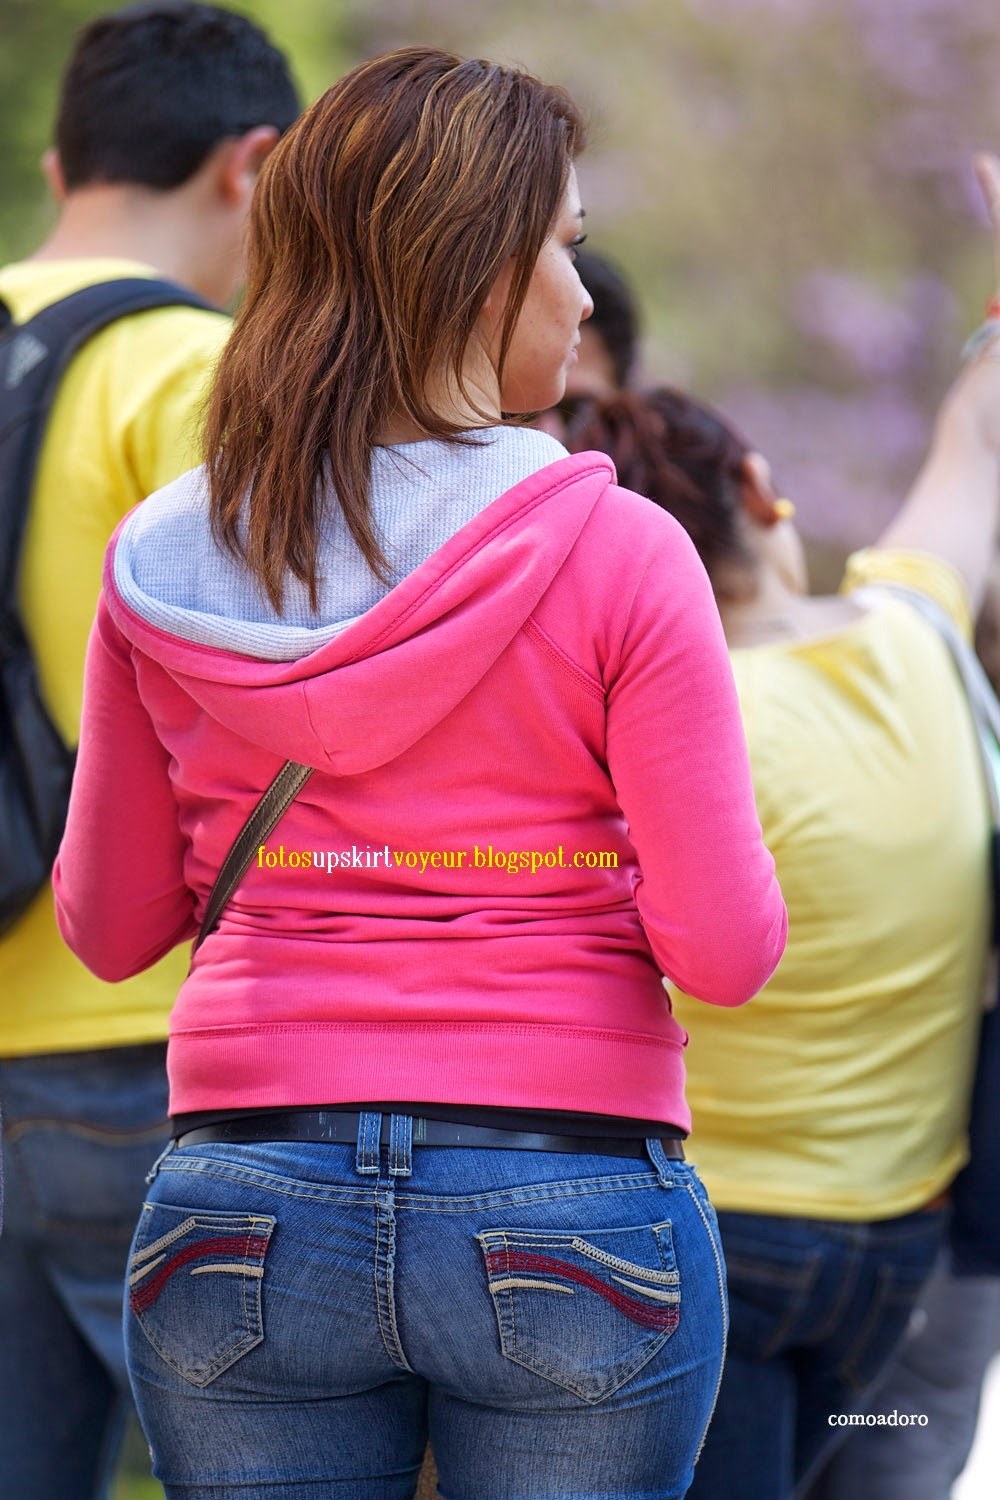 chicas mexicanas caderonas - Sexy girls on the street, girls in jeans ...